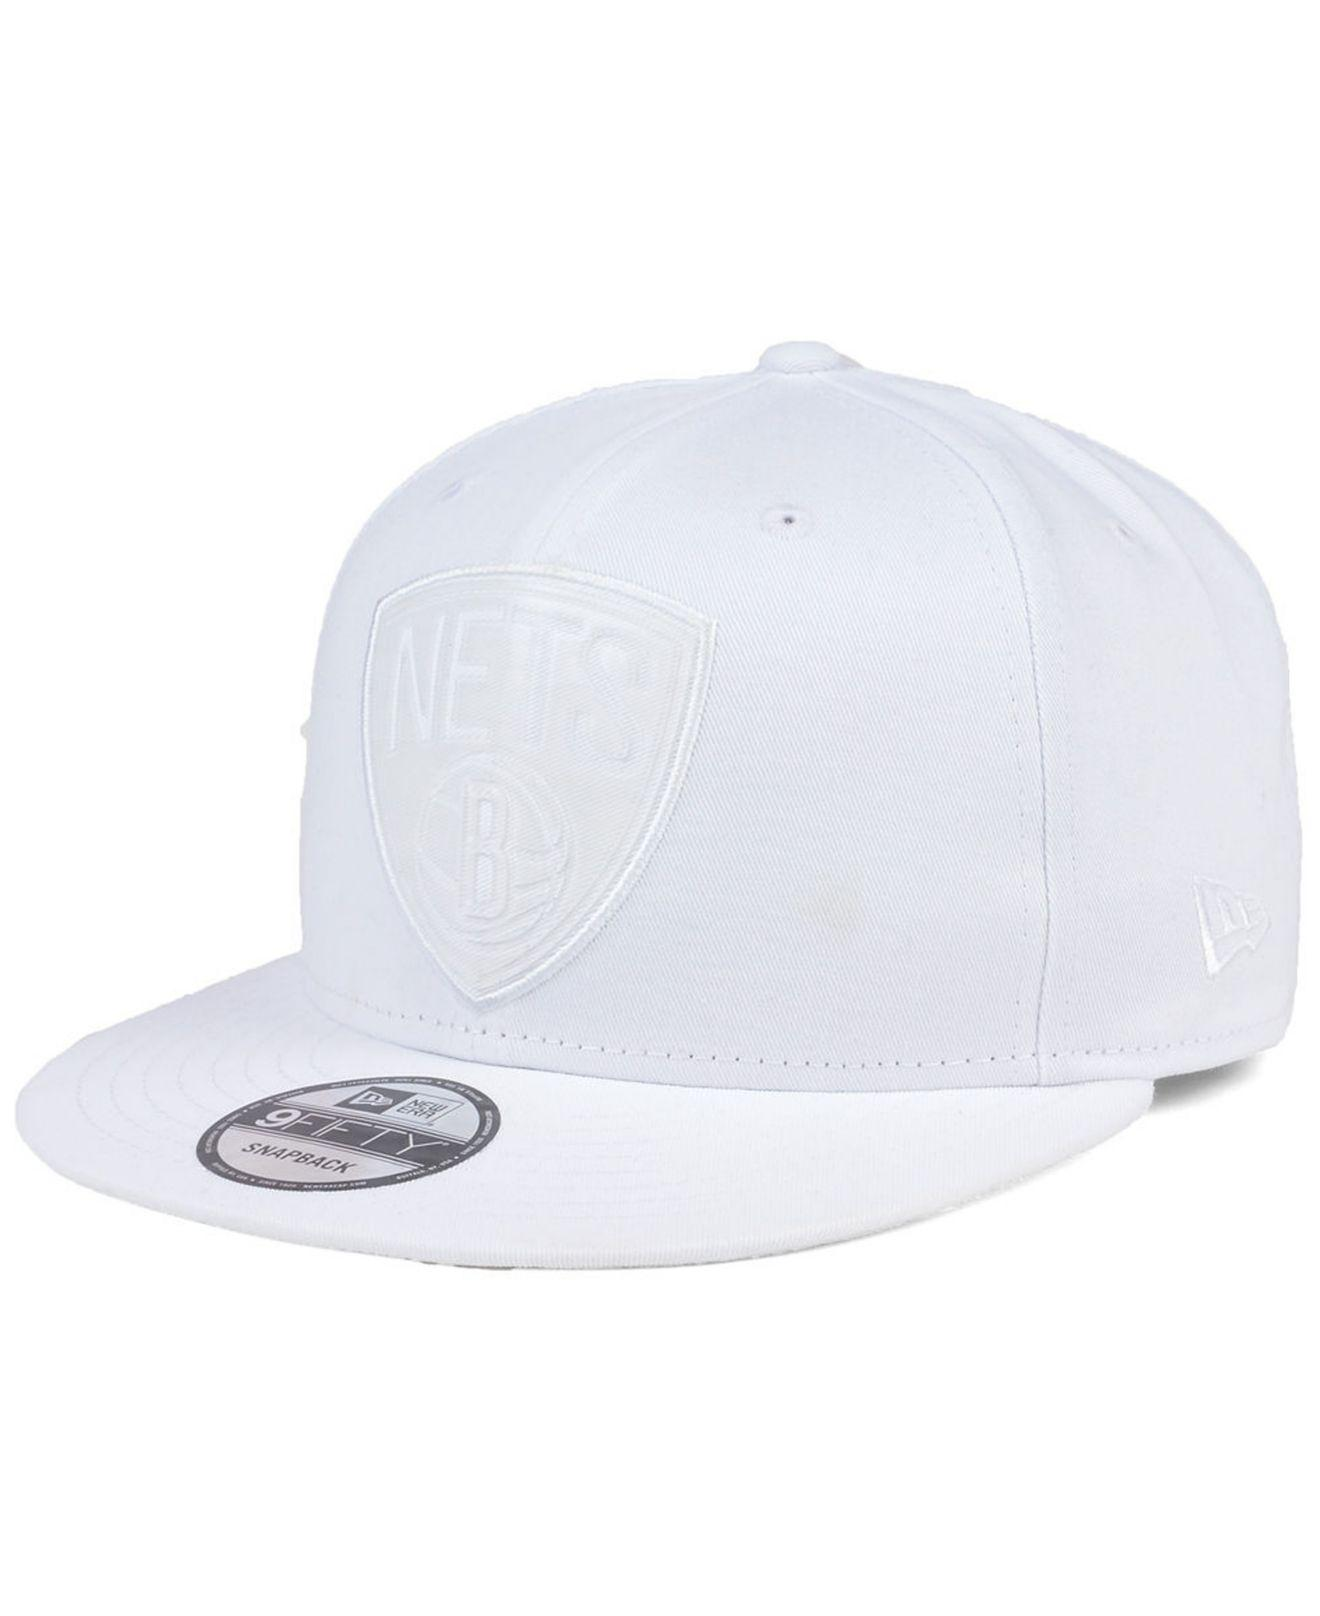 finest selection c76f0 5a871 KTZ - White So Icey 9fifty Snapback Cap for Men - Lyst. View fullscreen